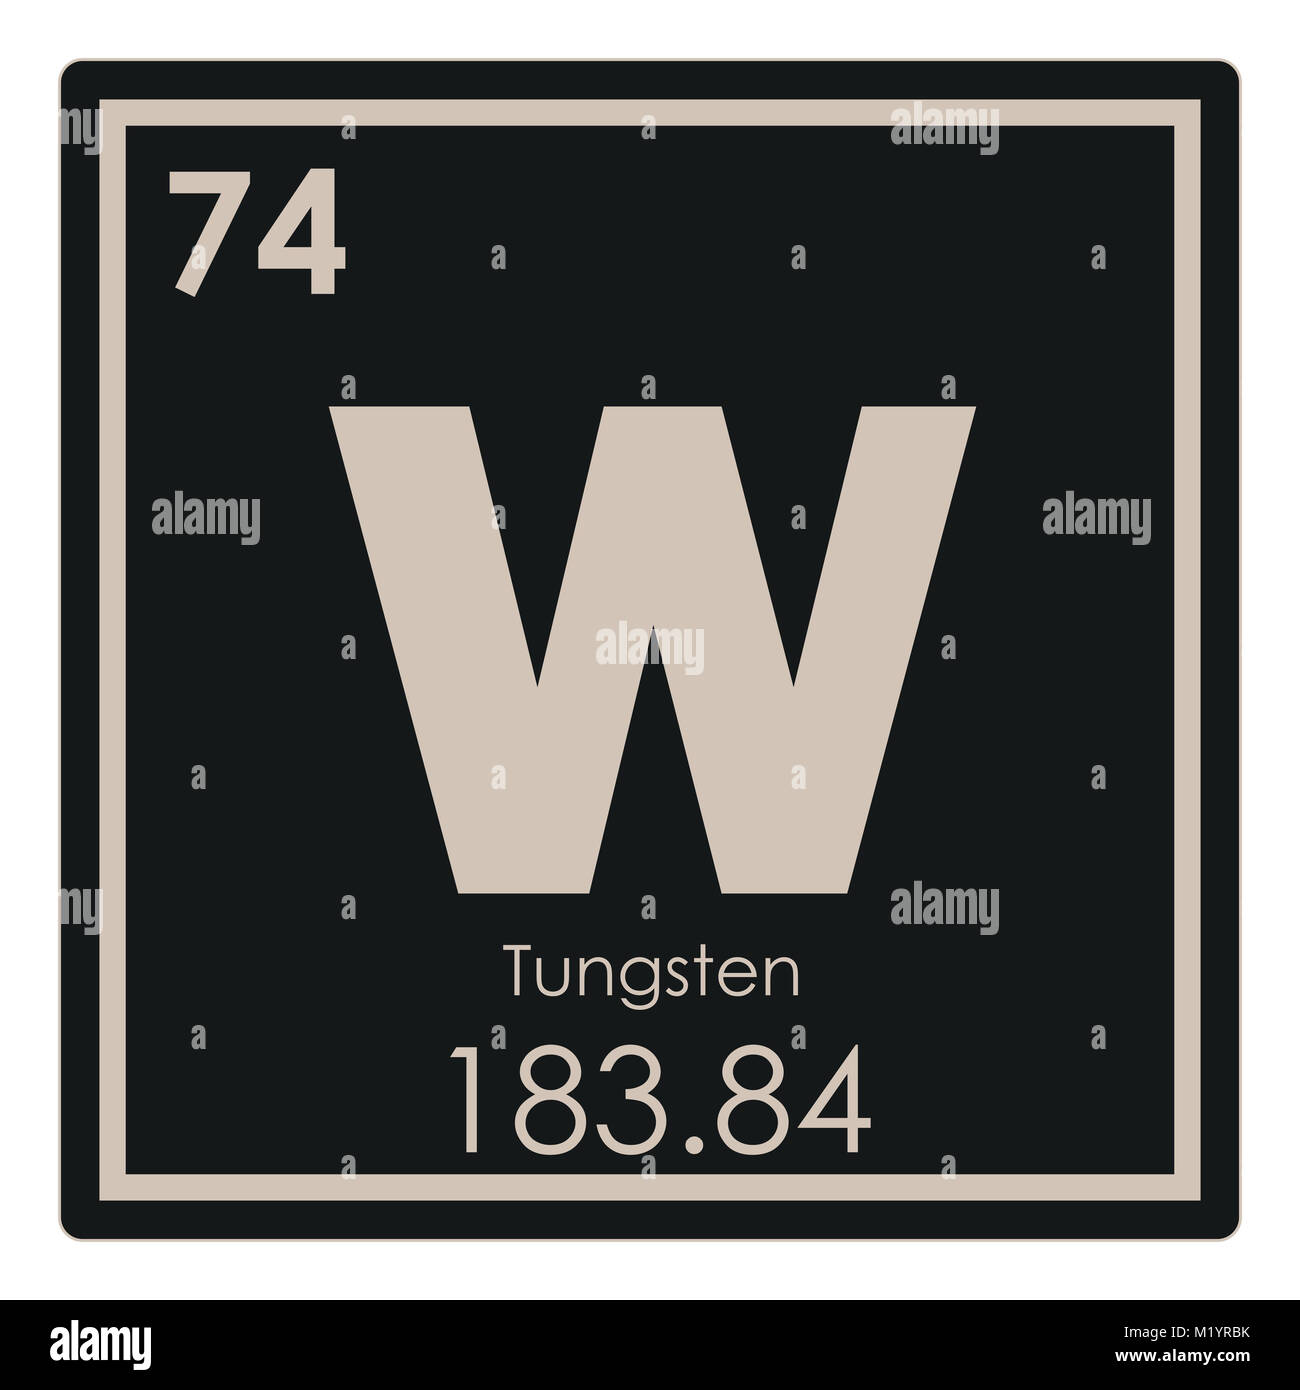 Tungsten chemical element periodic table science symbol stock photo tungsten chemical element periodic table science symbol urtaz Image collections